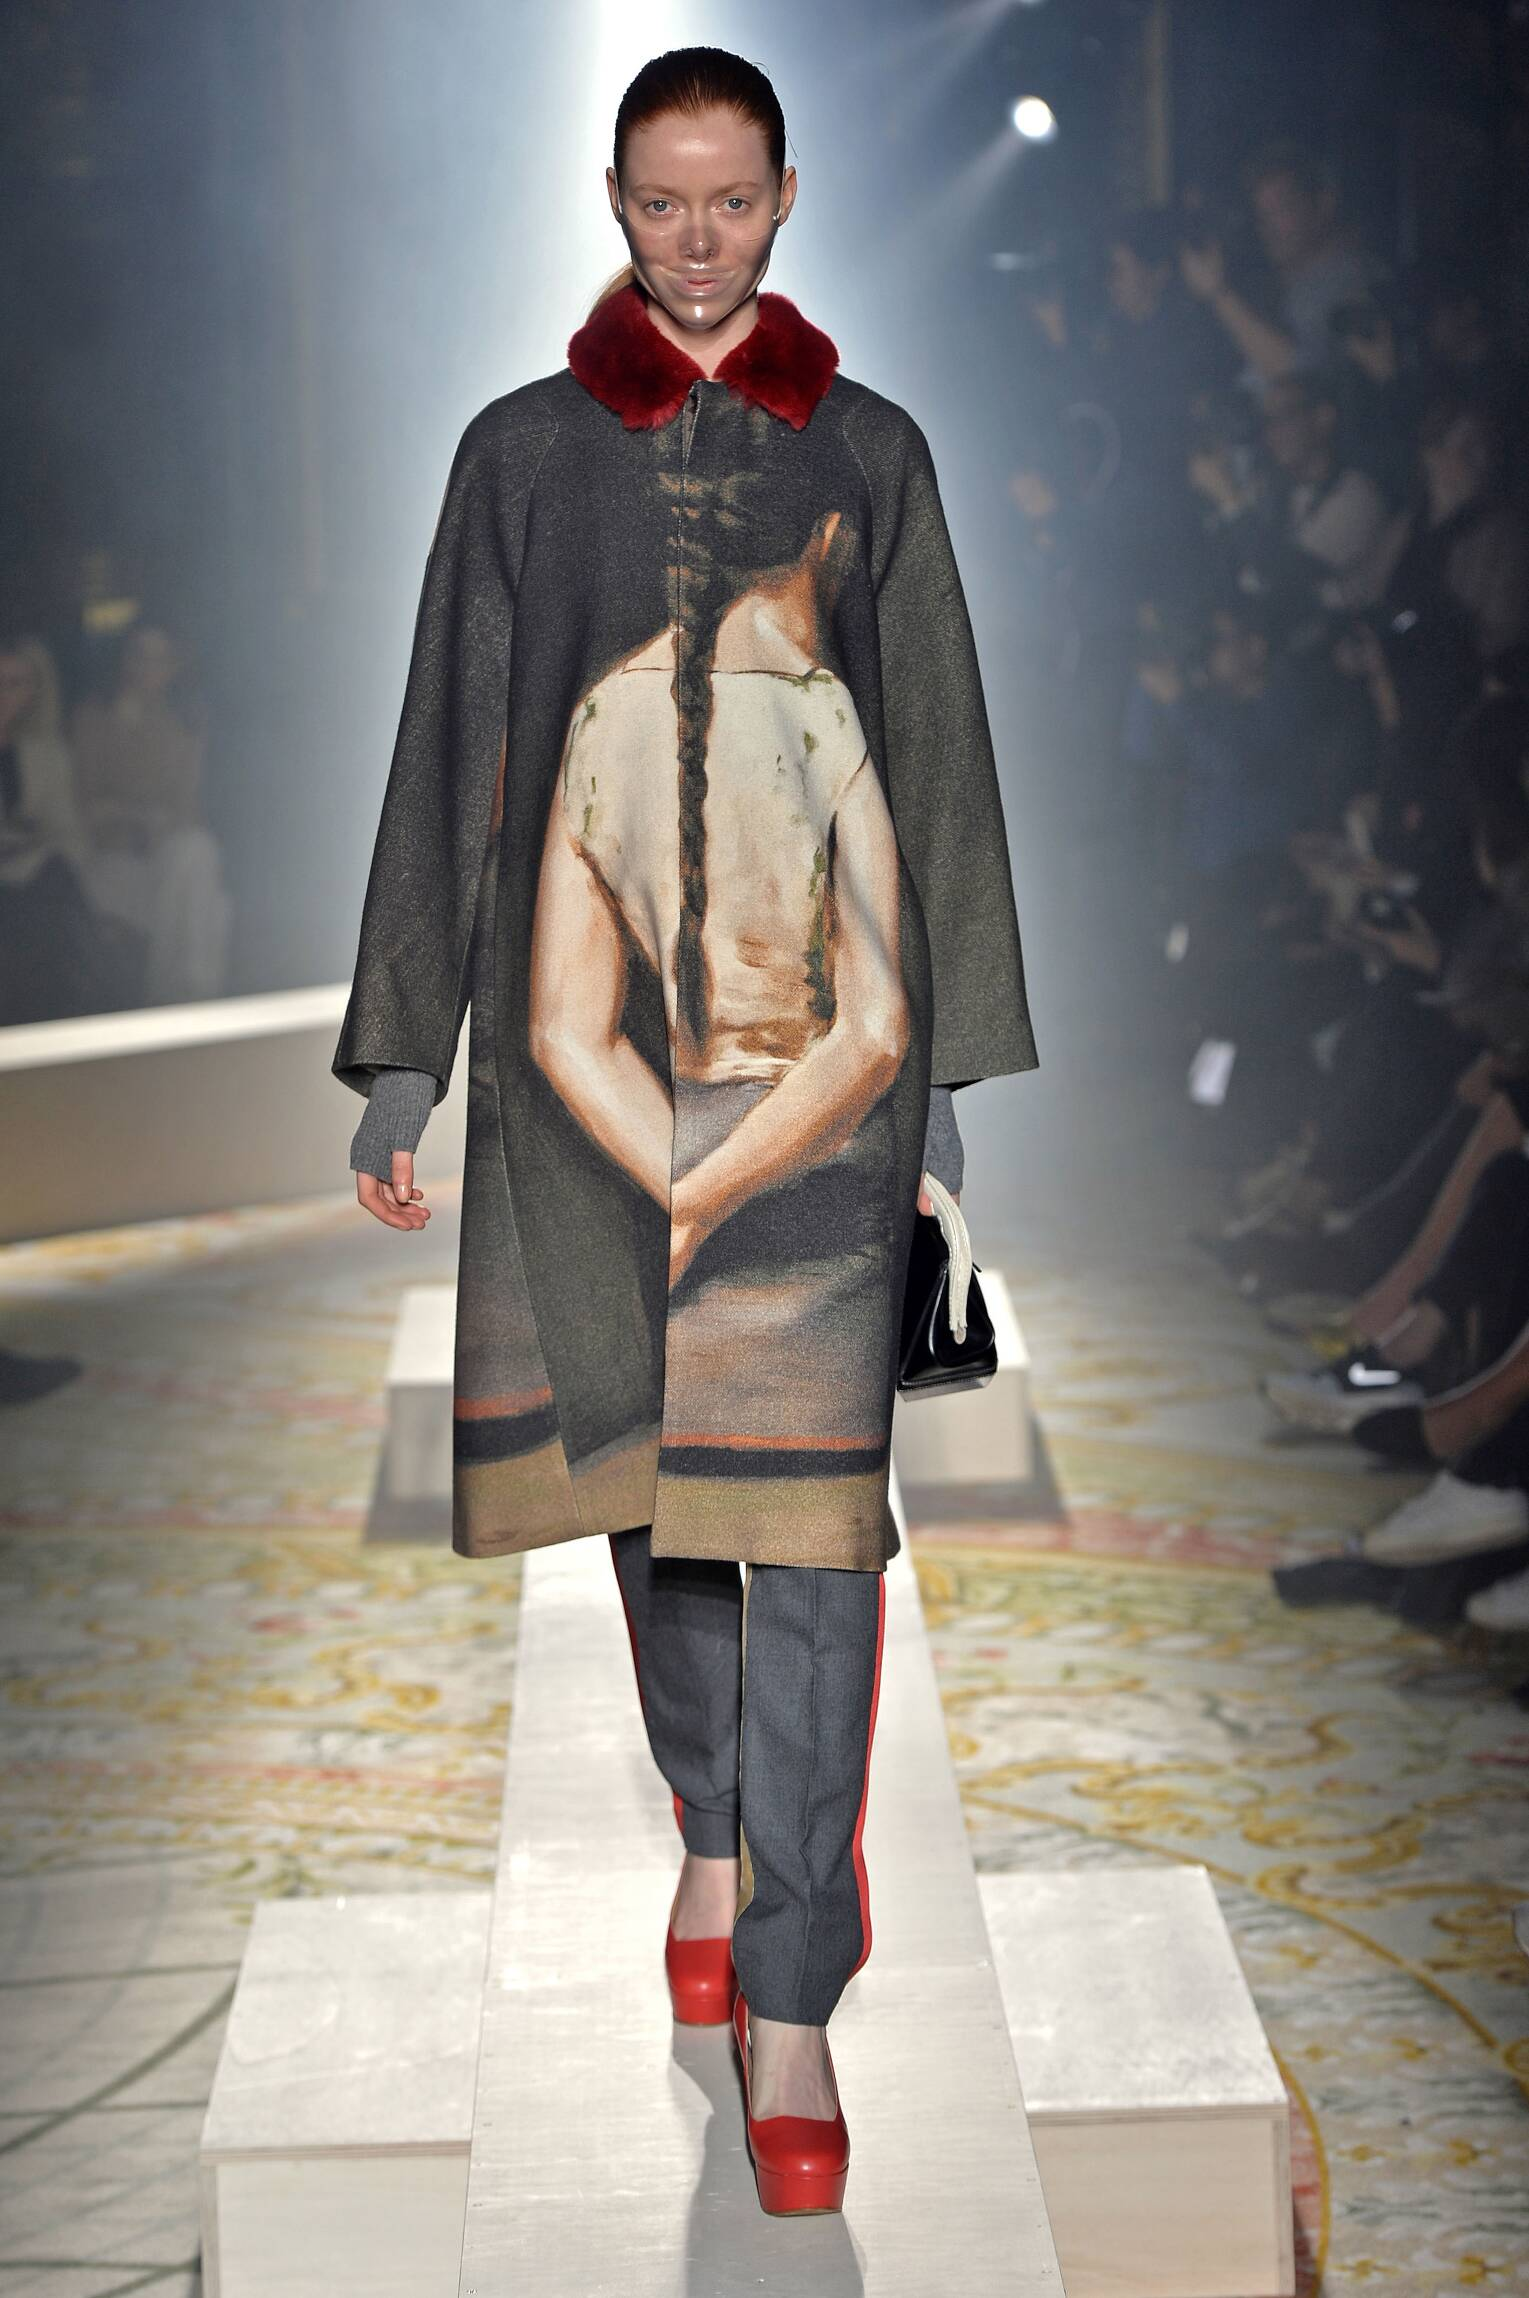 2015 Fashion Woman Model Undercover Collection Catwalk